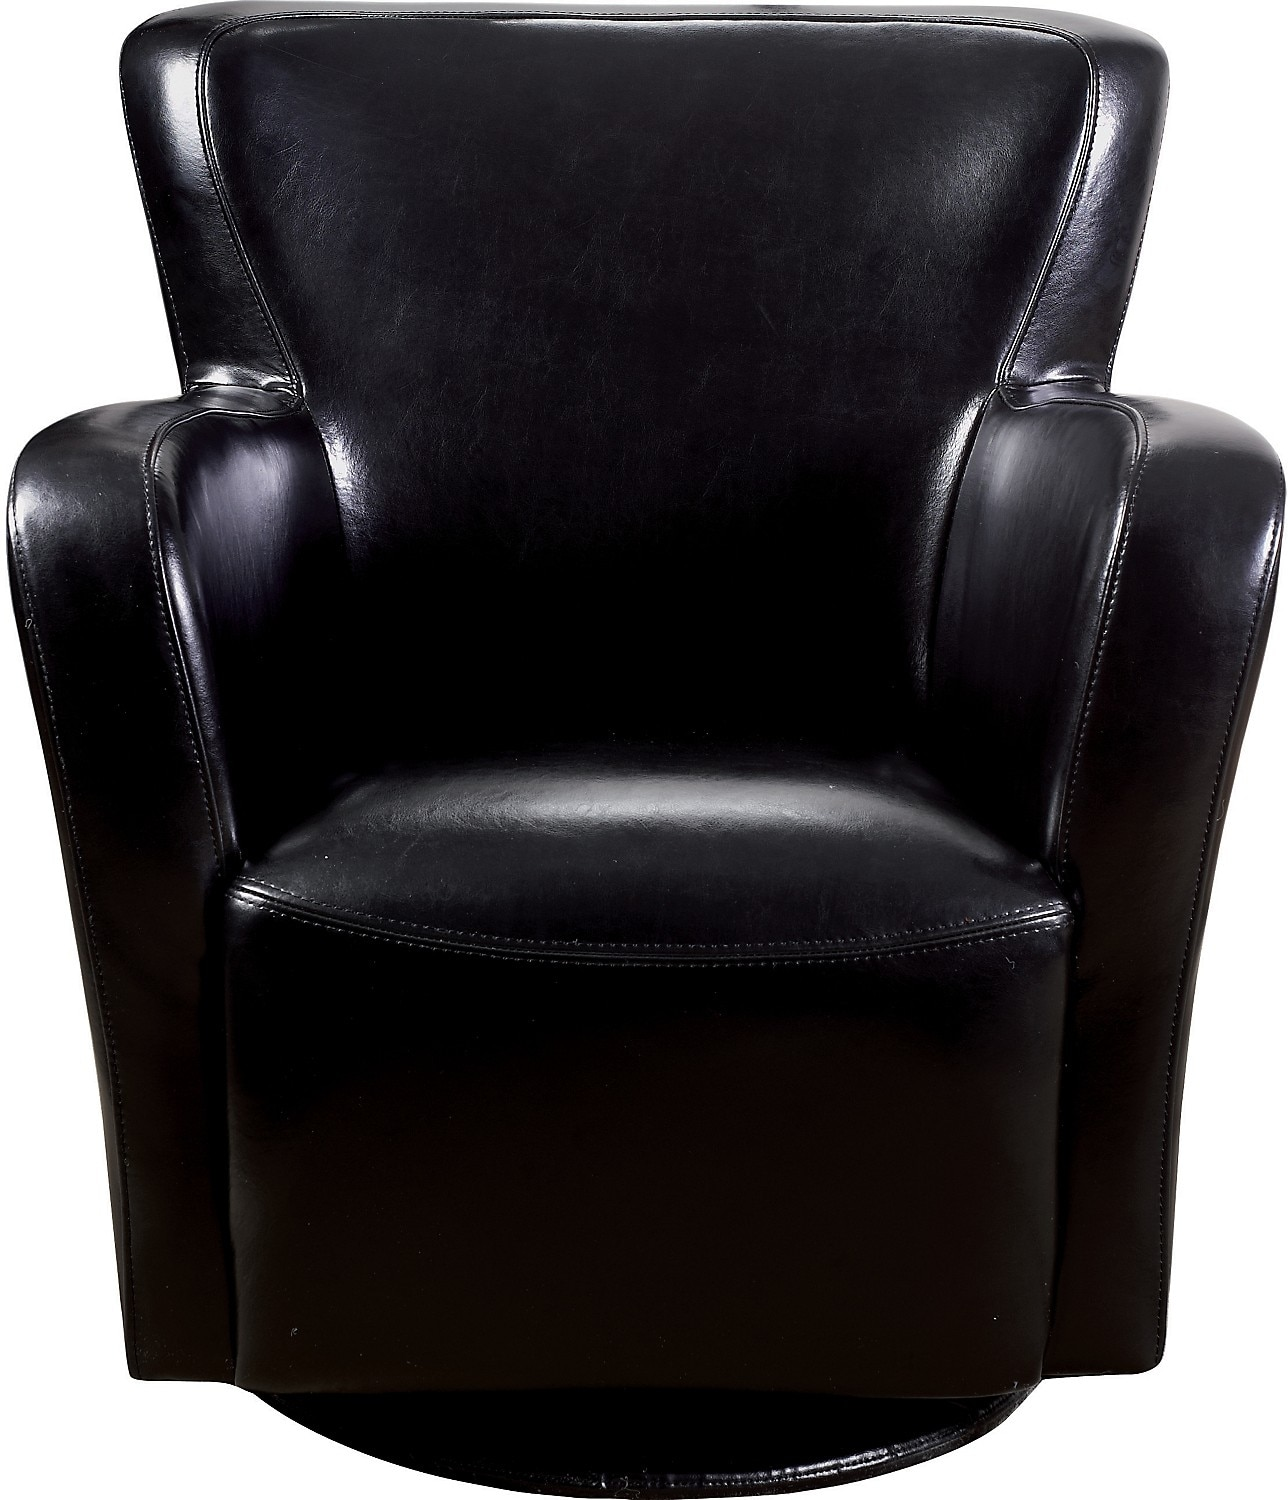 Bonded Leather Swivel Chair - Black